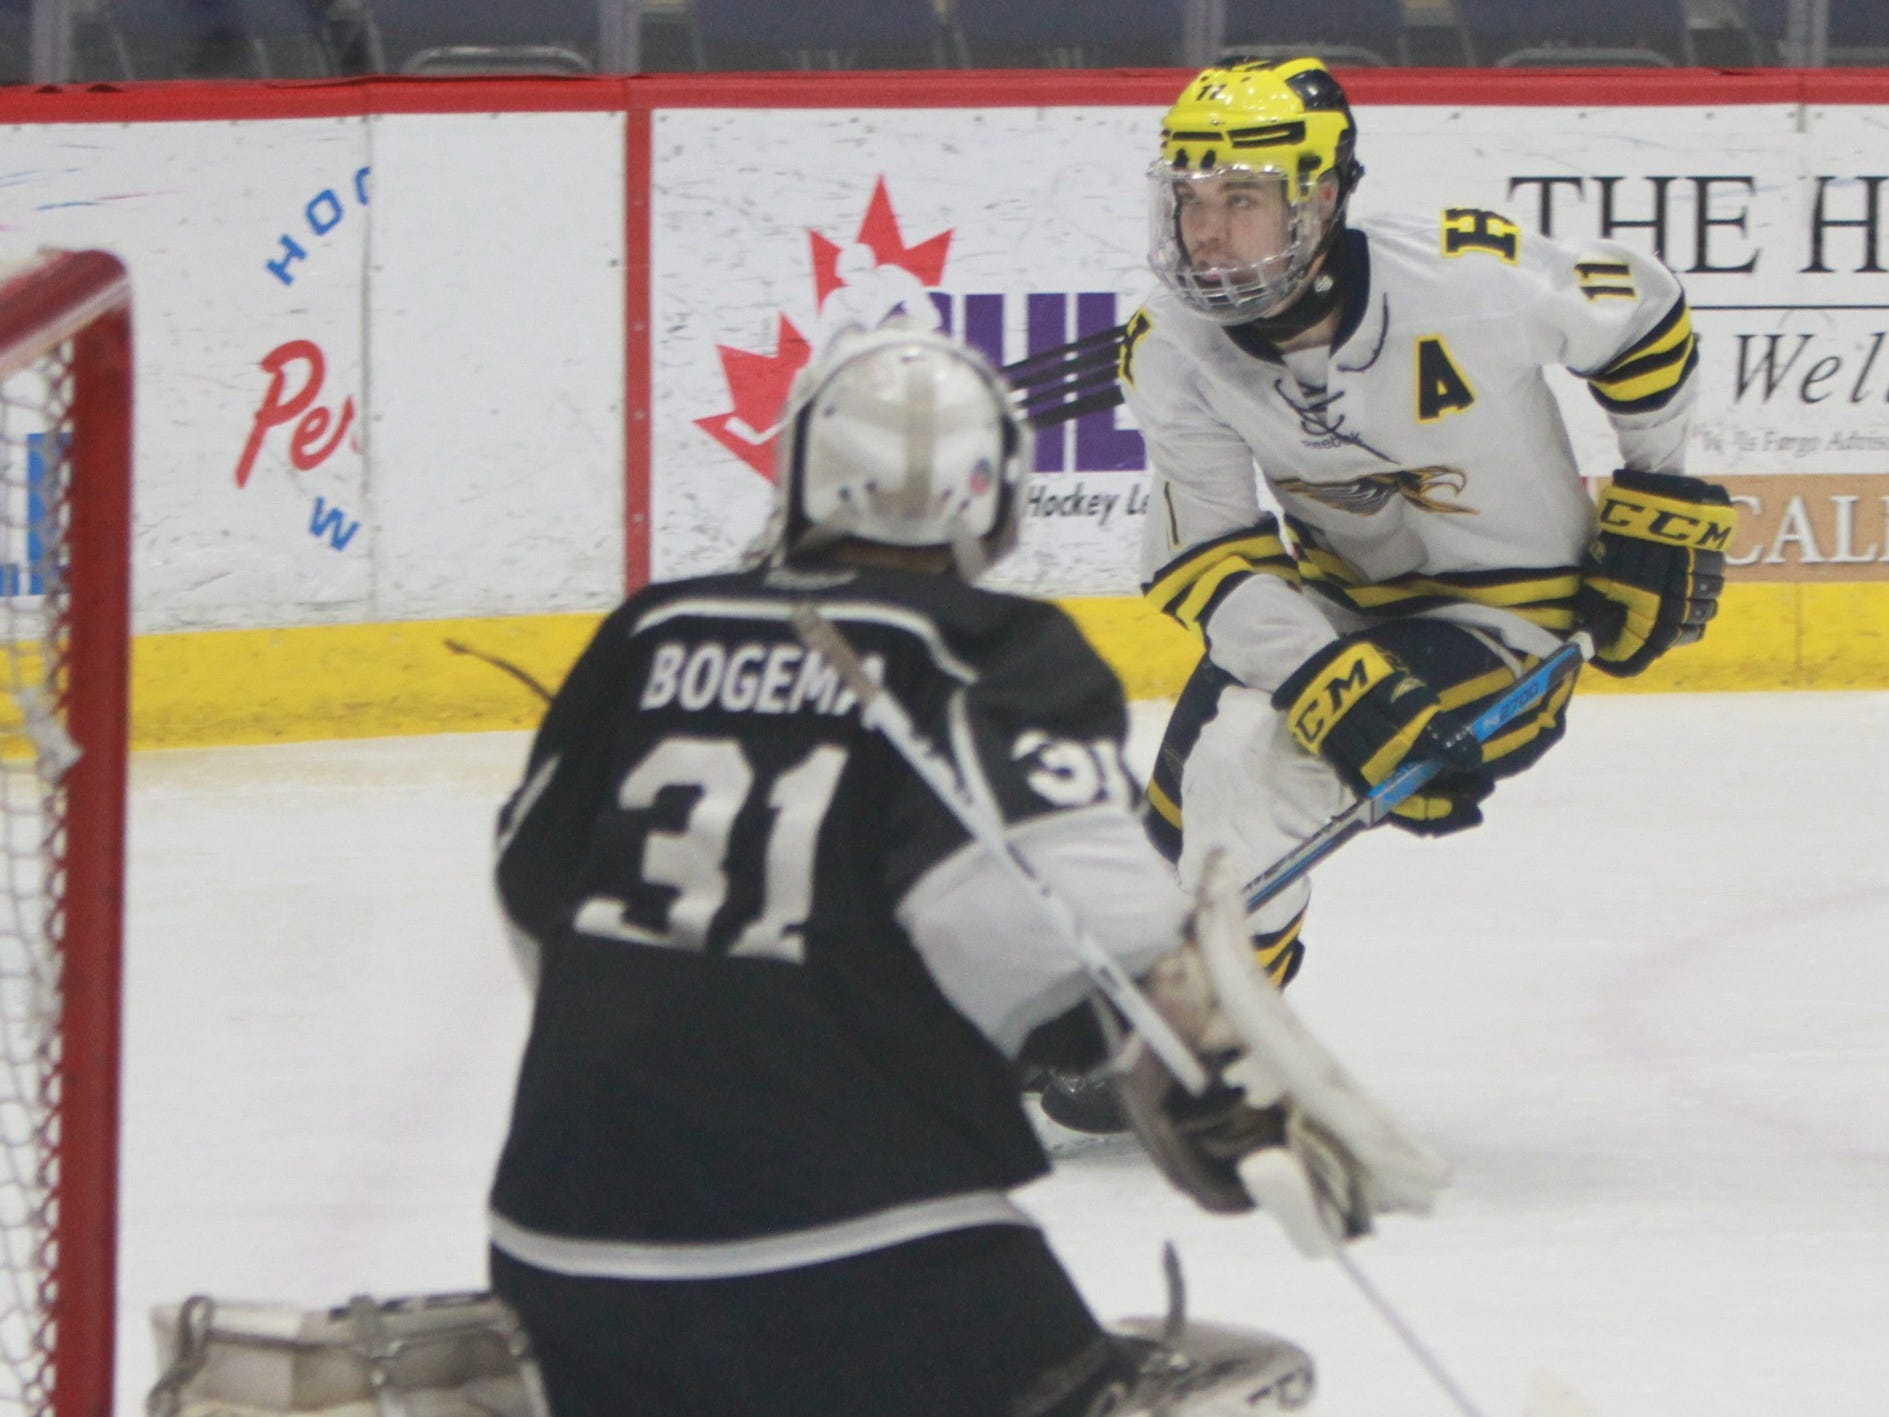 Hartland's Gabe Anderson follows up on his shot against Forest Hills Eastern goalie Brenden Bogema during the state Division 2 hockey quarterfinals in Flint on Tuesday, March 5, 2019.